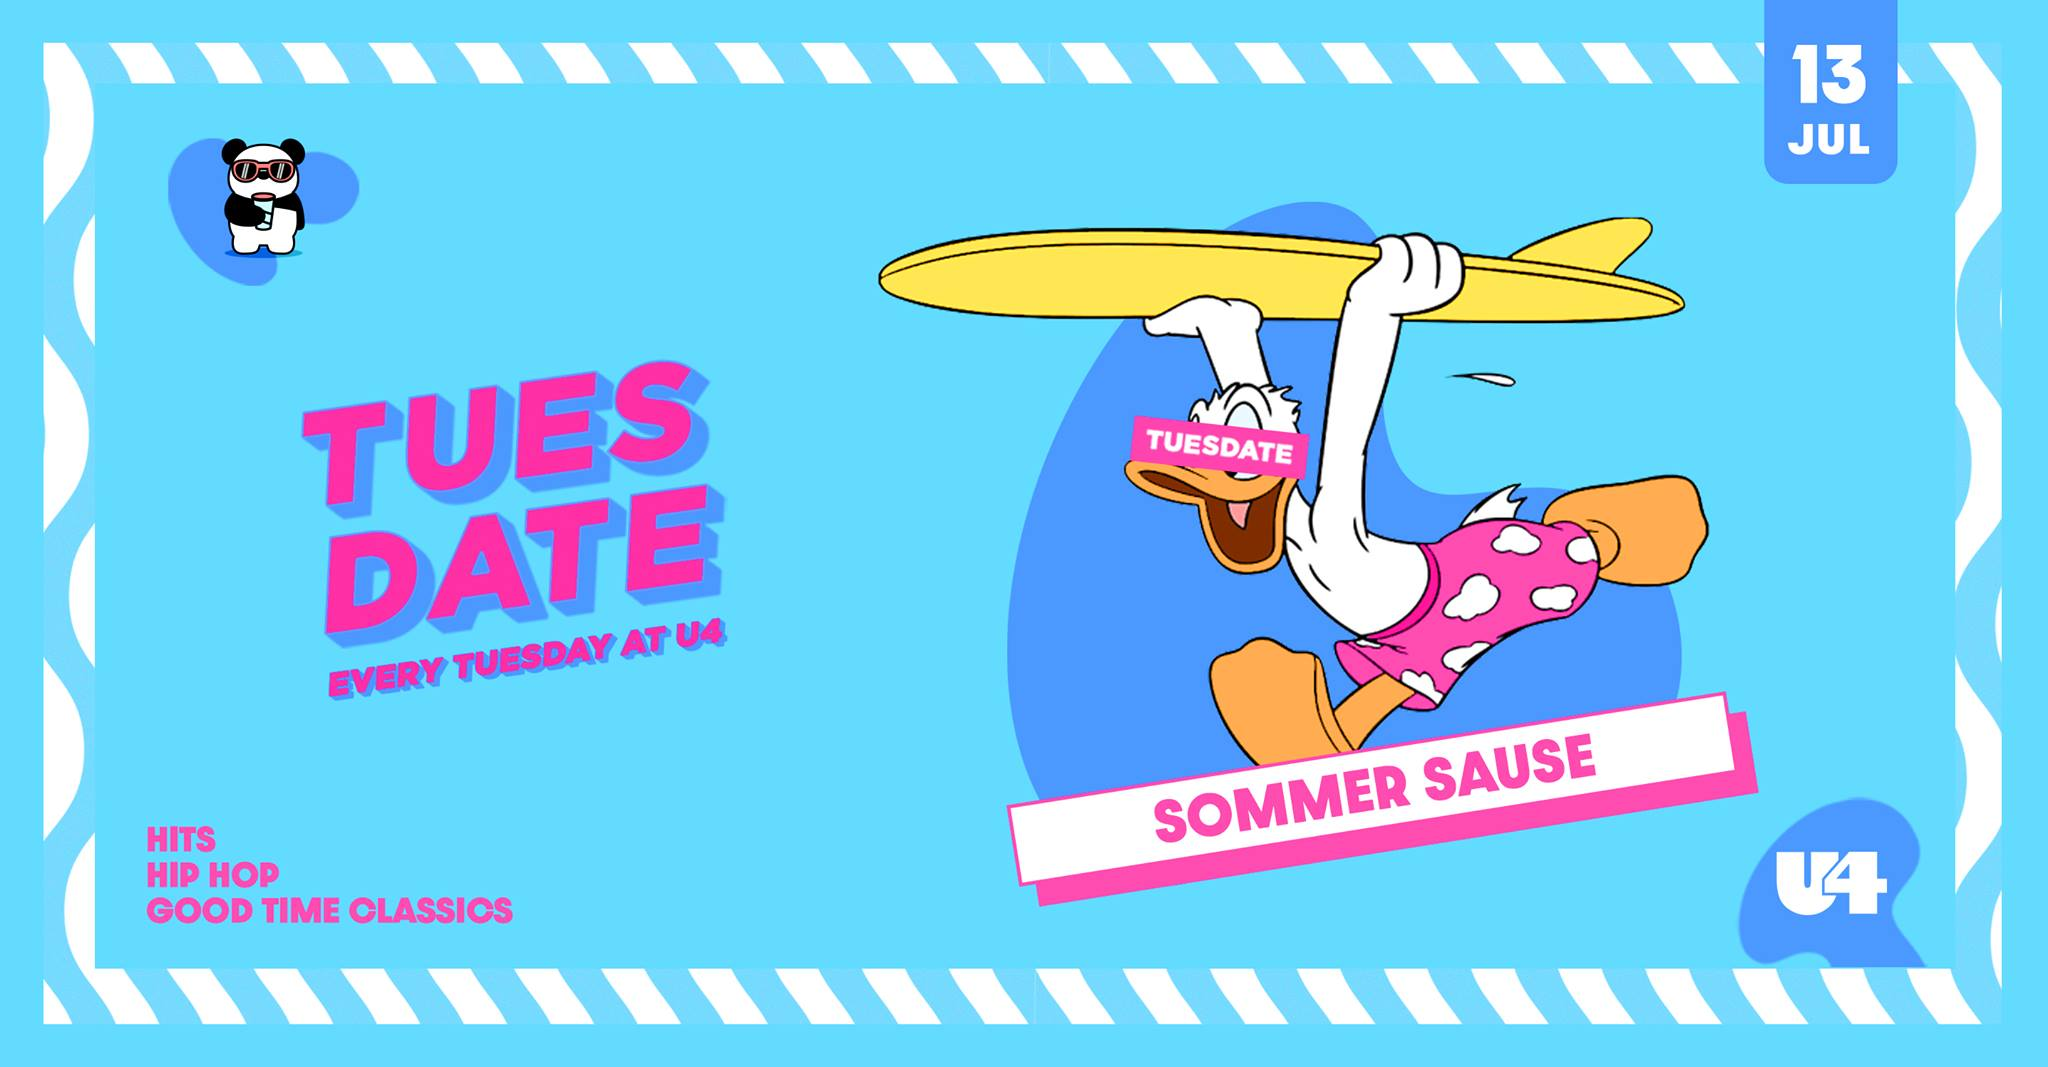 Events Wien: TUESDATE – SOMMERSAUSE